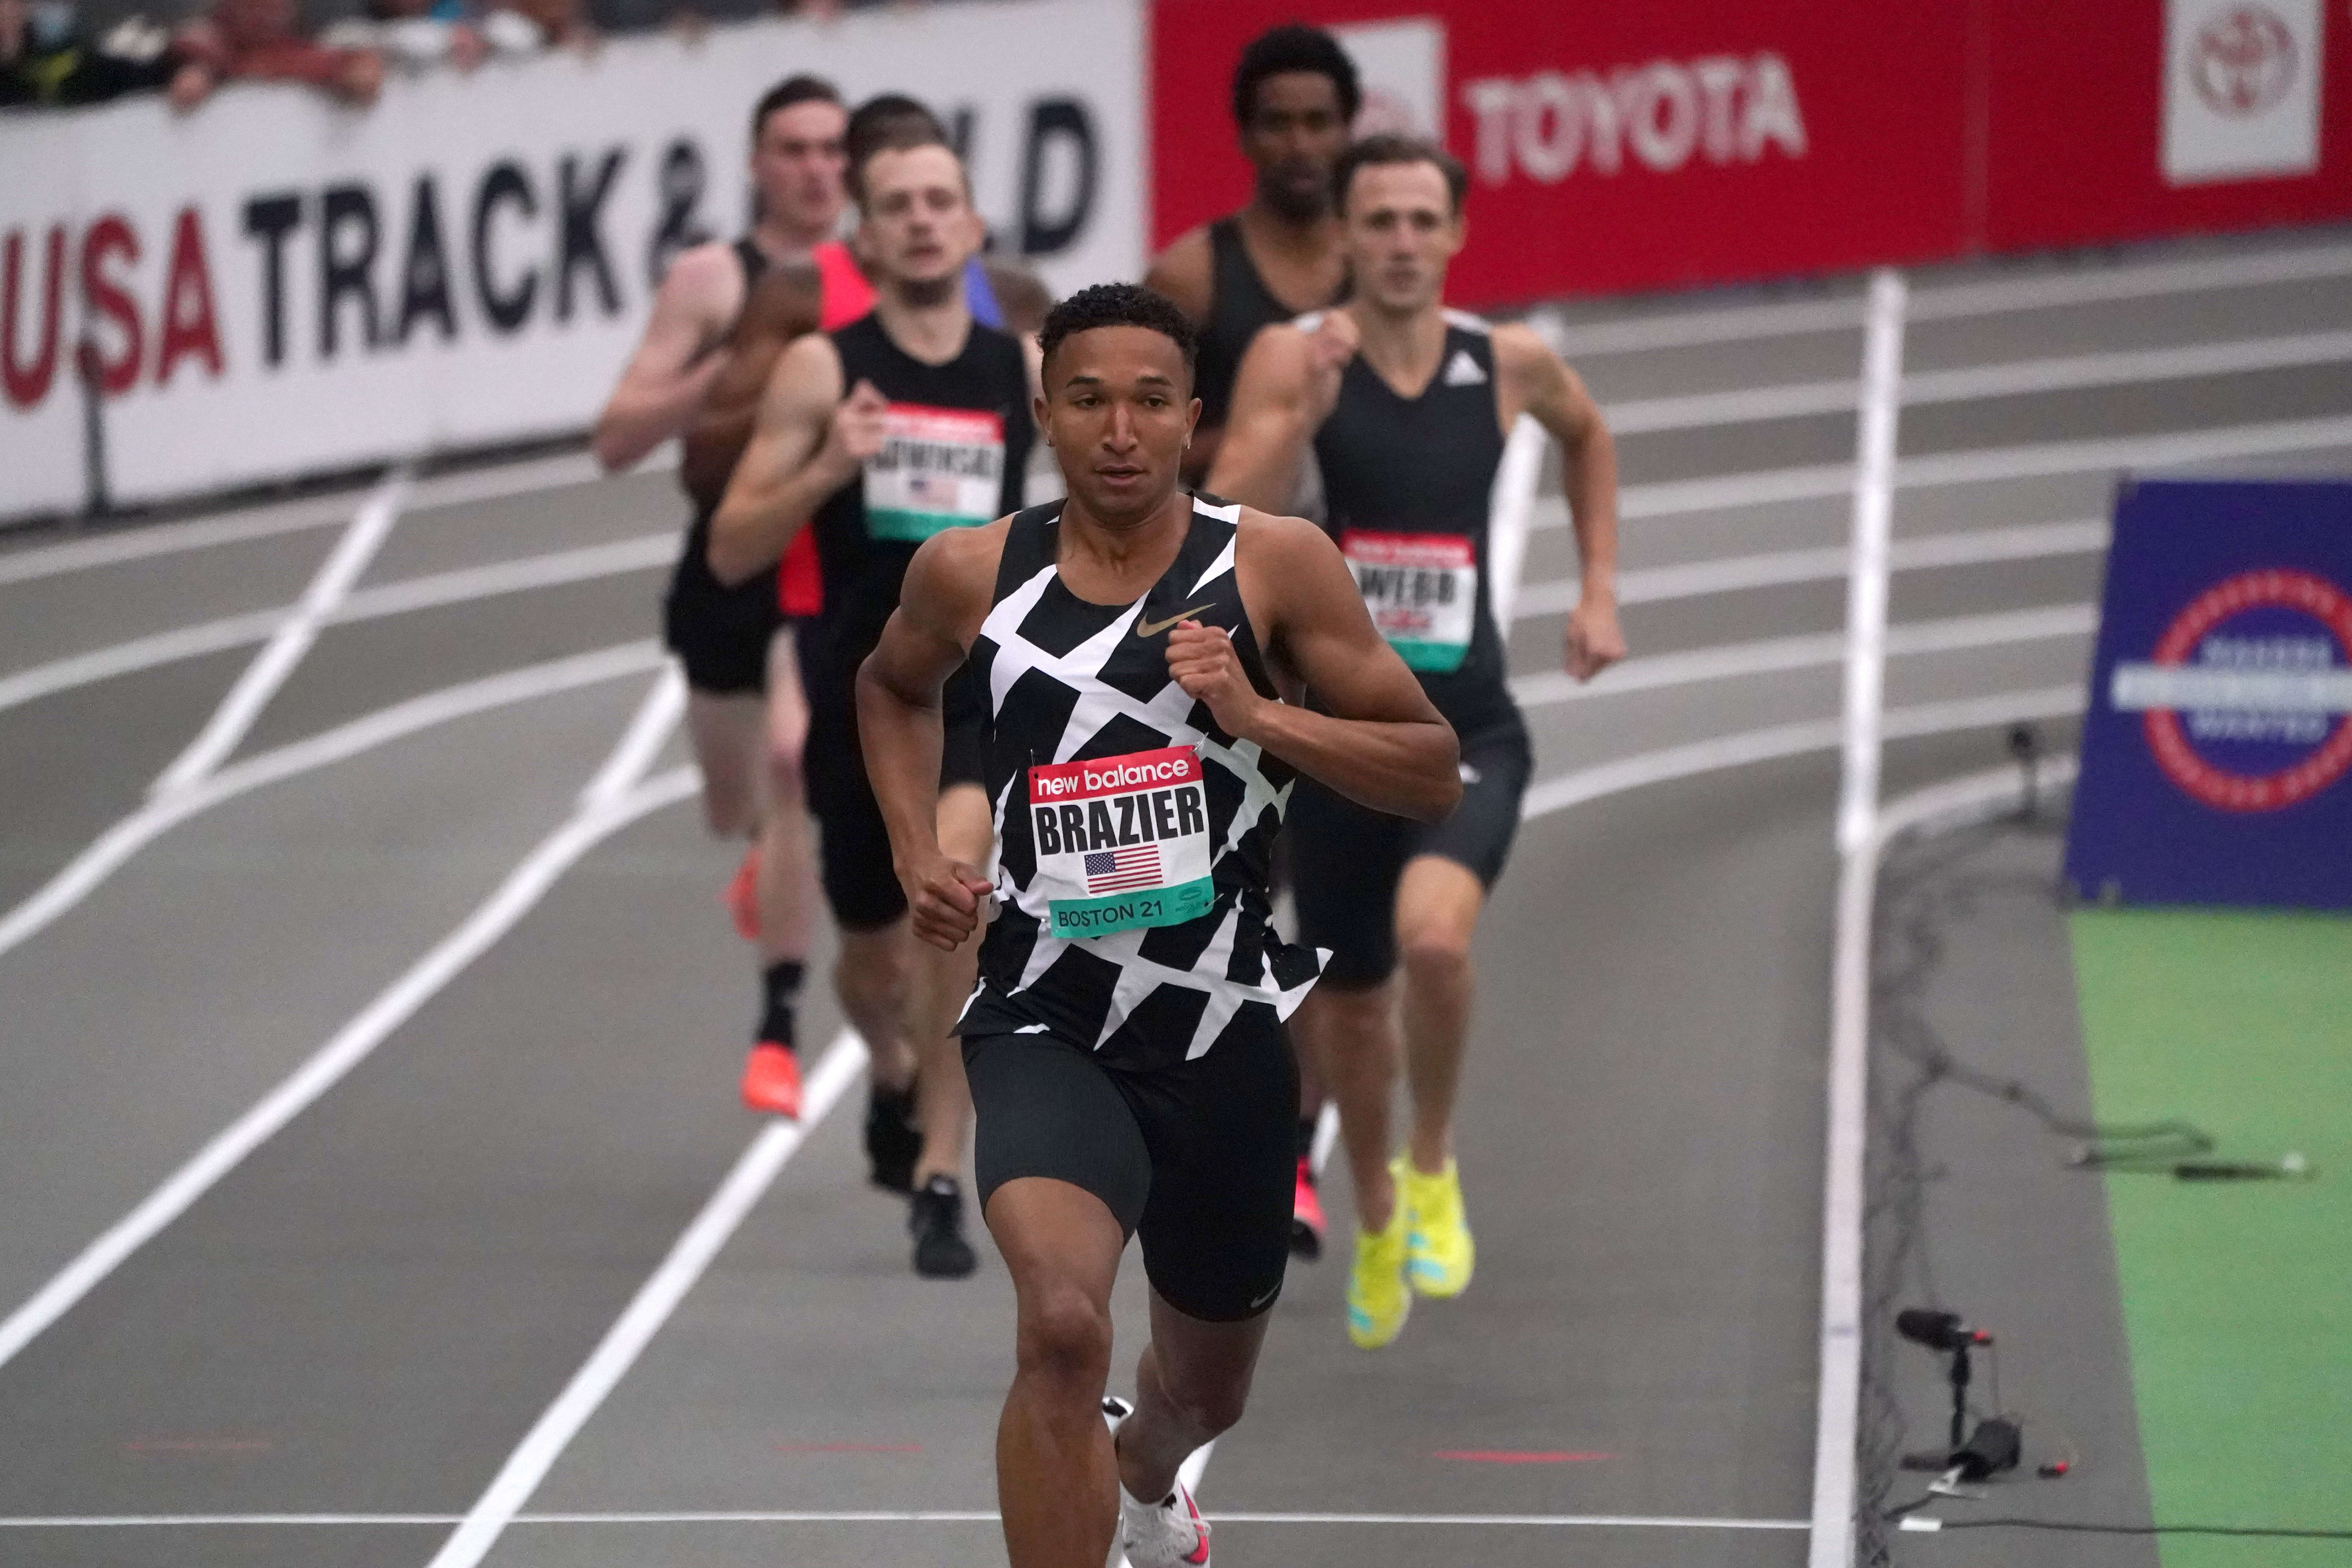 Feb 13, 2021; Staten Island, New York, USA; Donavan Brazier (USA) wins the 800m in an American record 1:44.21 during the New Balance Indoor Grand Prix at Ocean Breeze Athletic Complex. Mandatory Credit: Kirby Lee-USA TODAY Sports